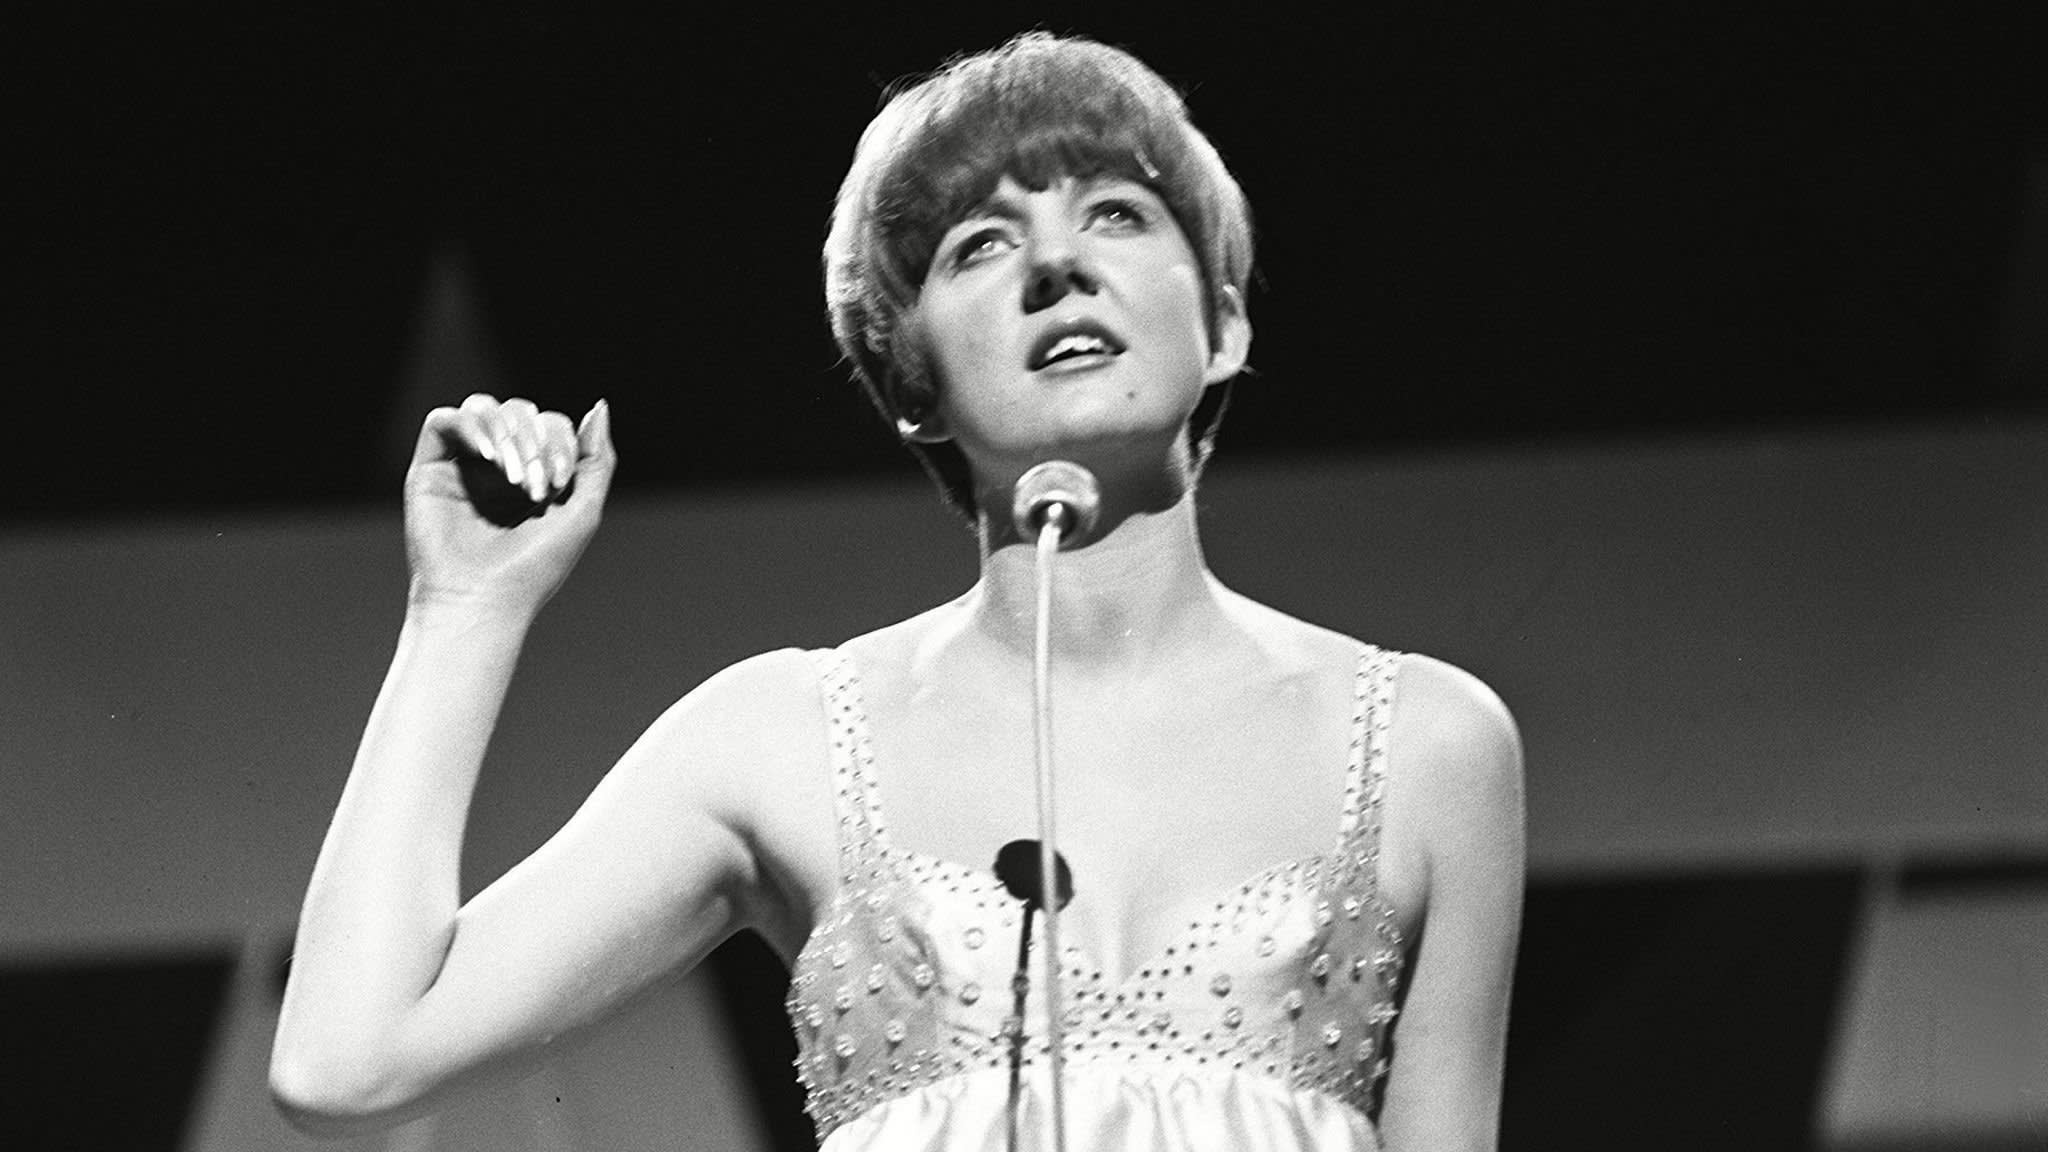 Alfie — Burt Bacharach described it as his favourite of all the